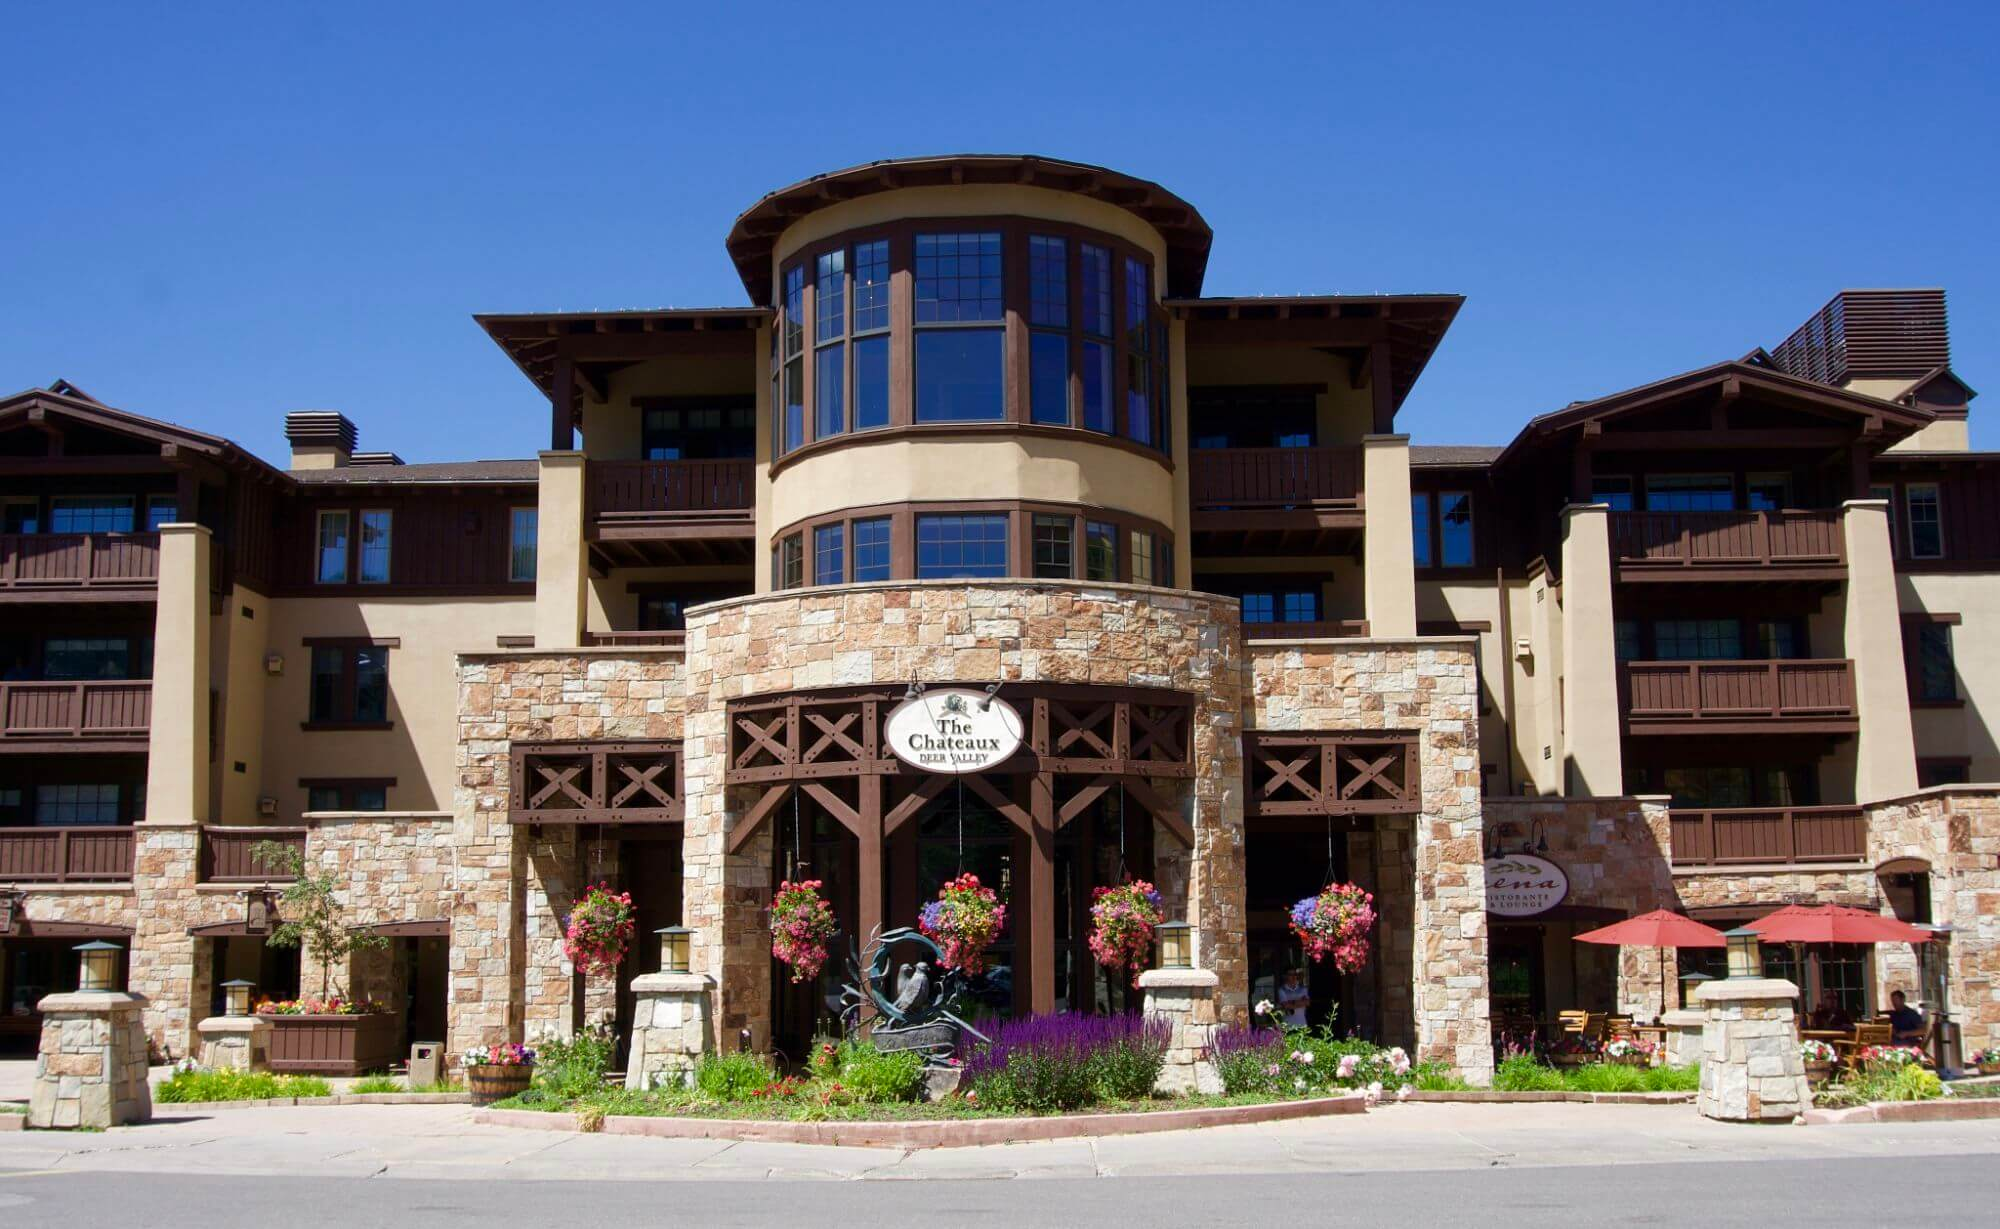 Chateaux at Deer Valley